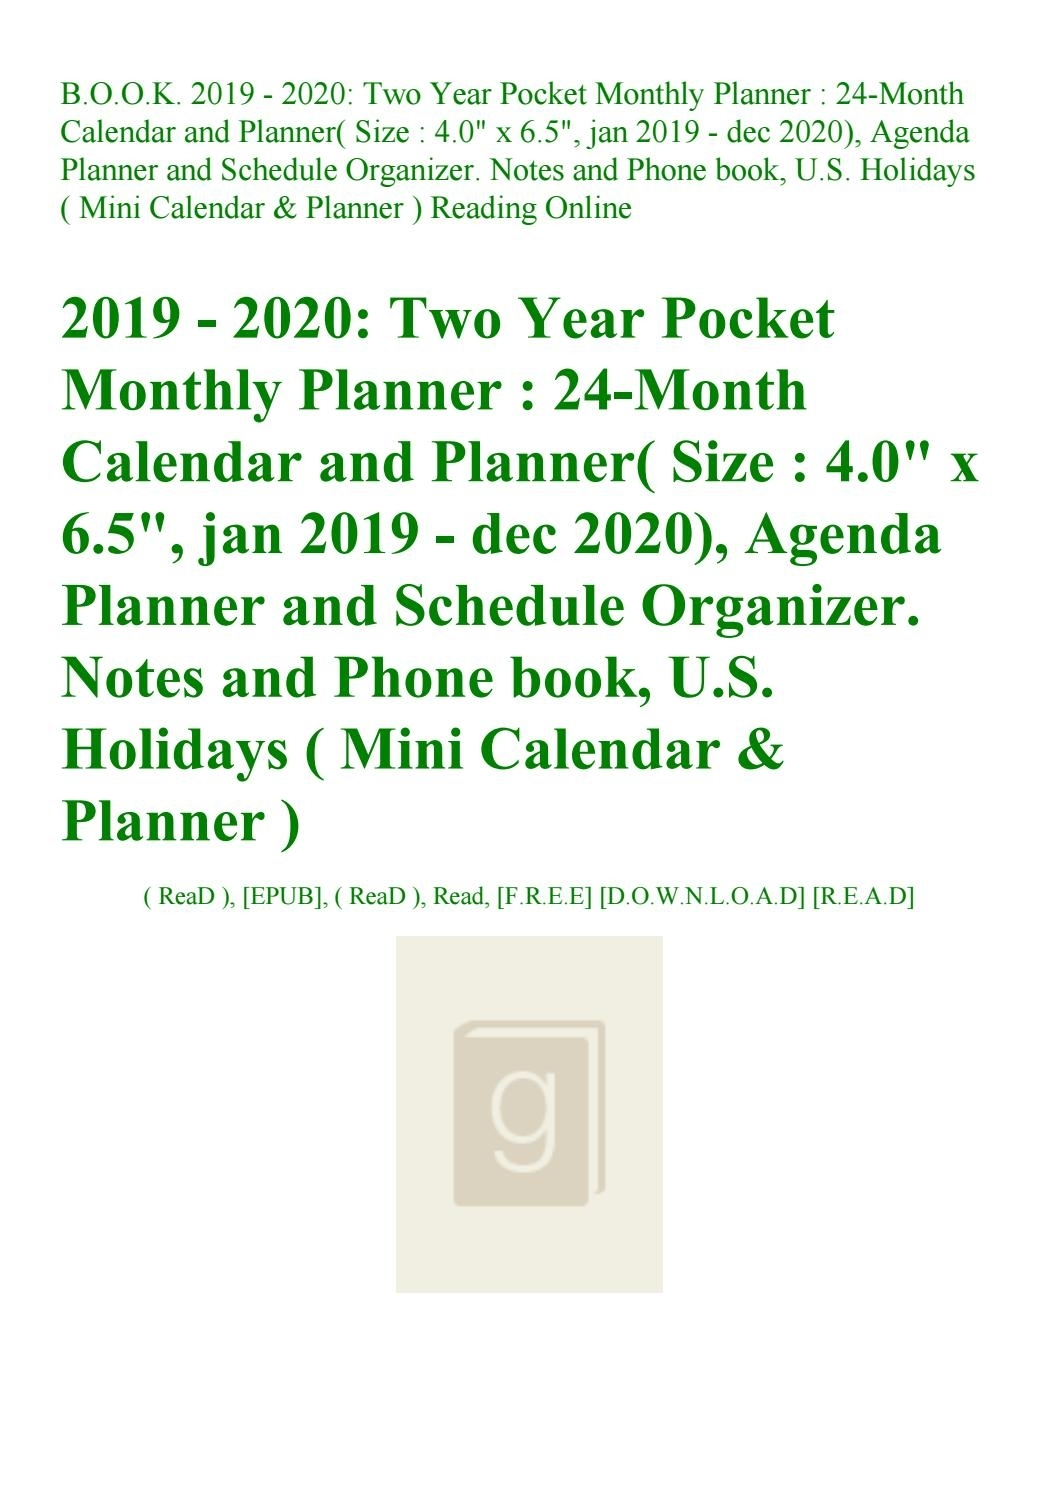 Read B.o.o.k. 2019 - 2020 Two Year Pocket Monthly Planner 24-Month with U Of R 2020 Calendar